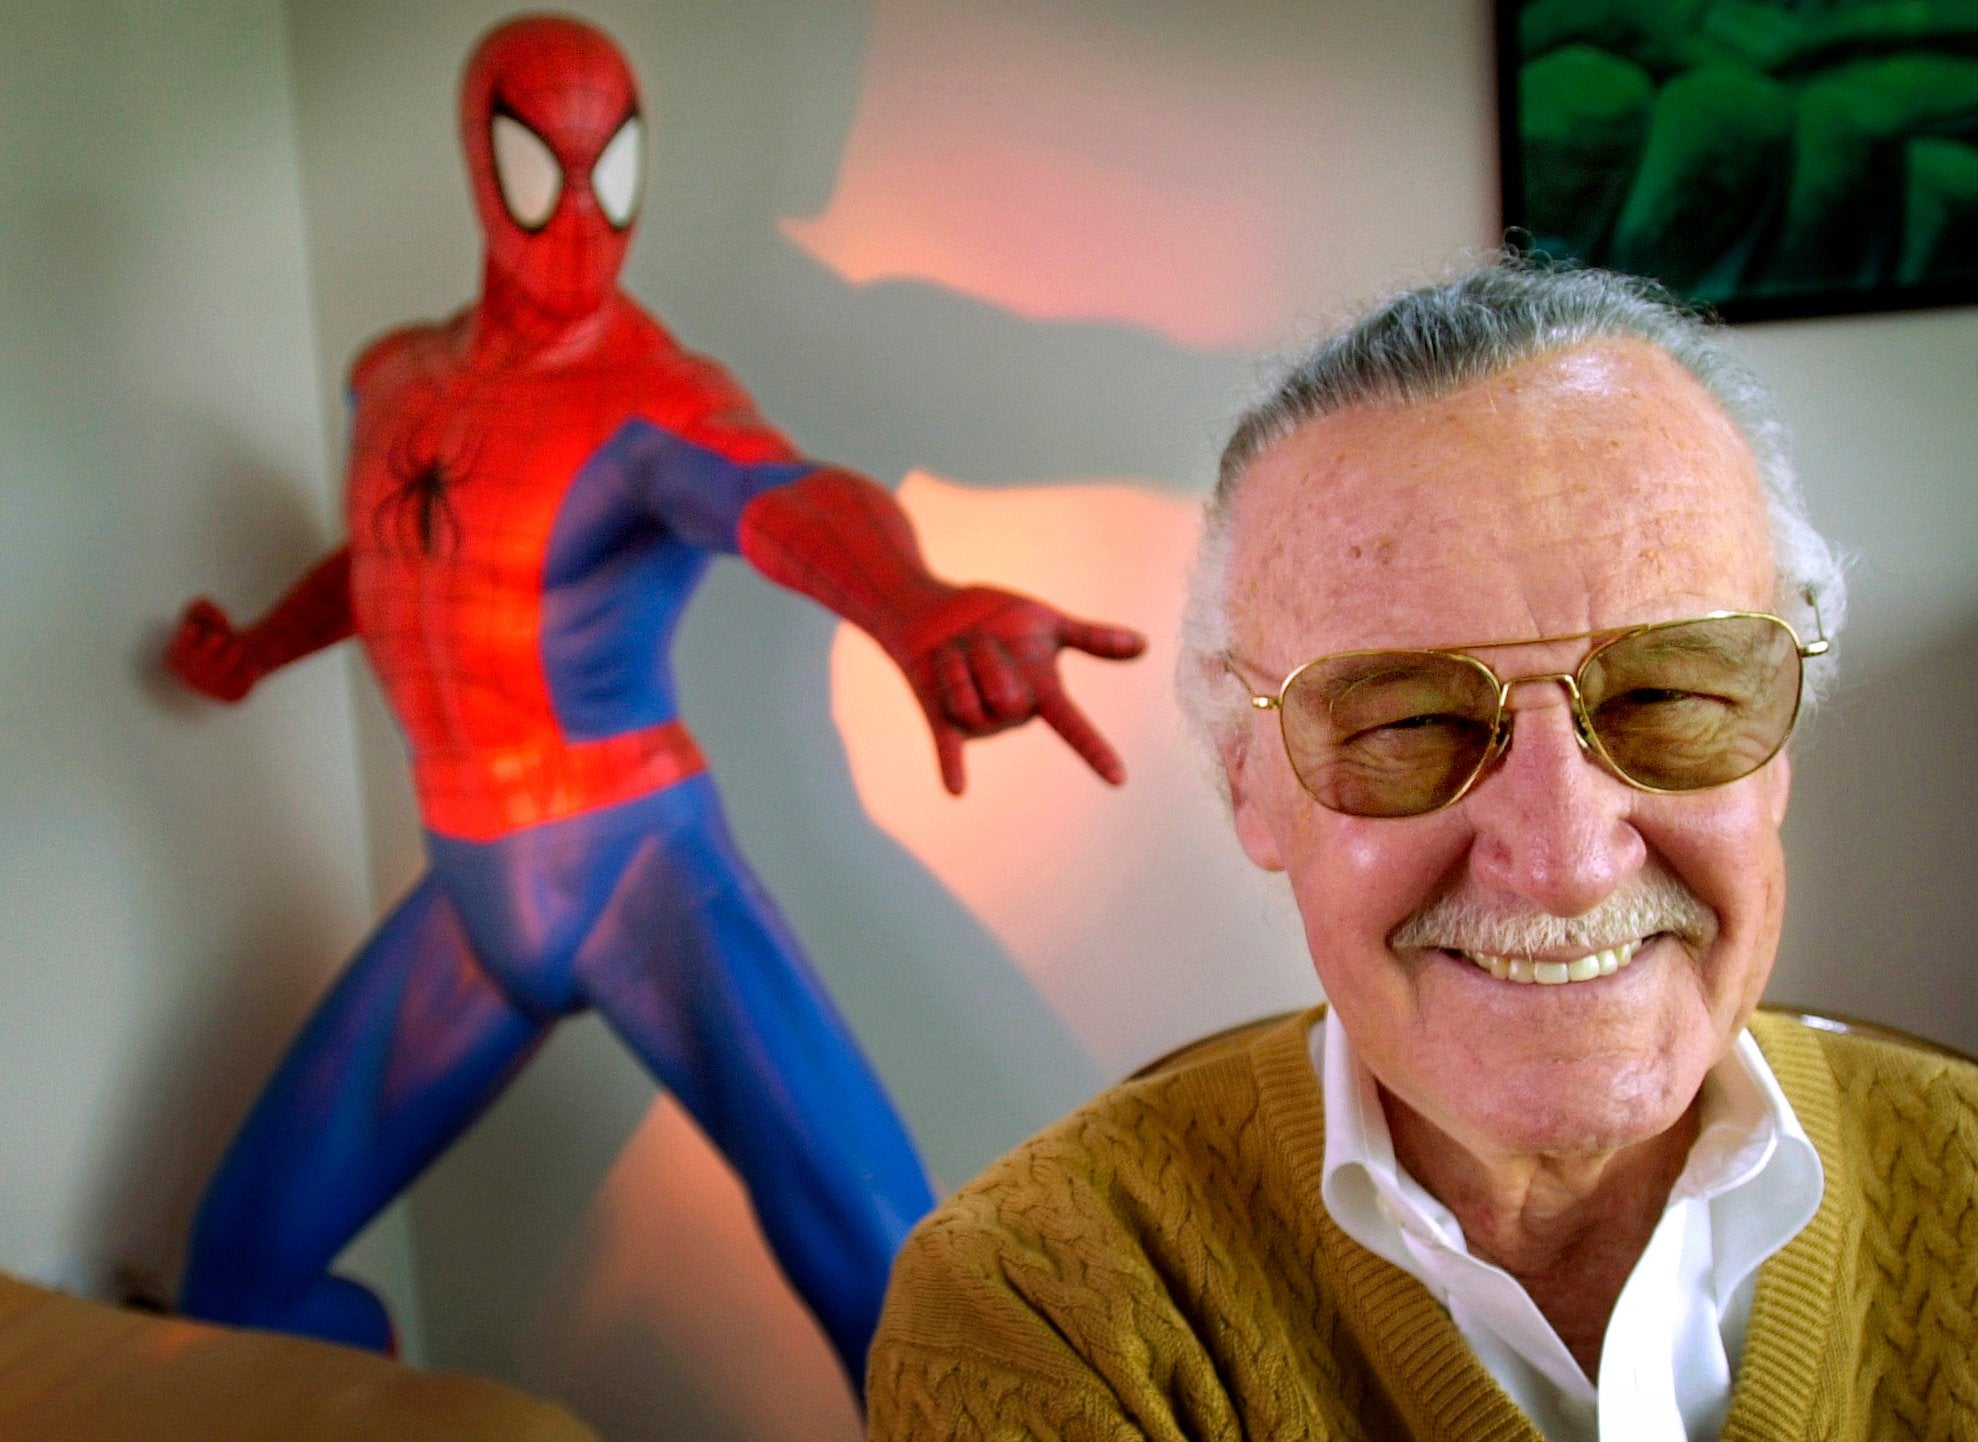 My sons have autism – so Stan Lee's superheroes were